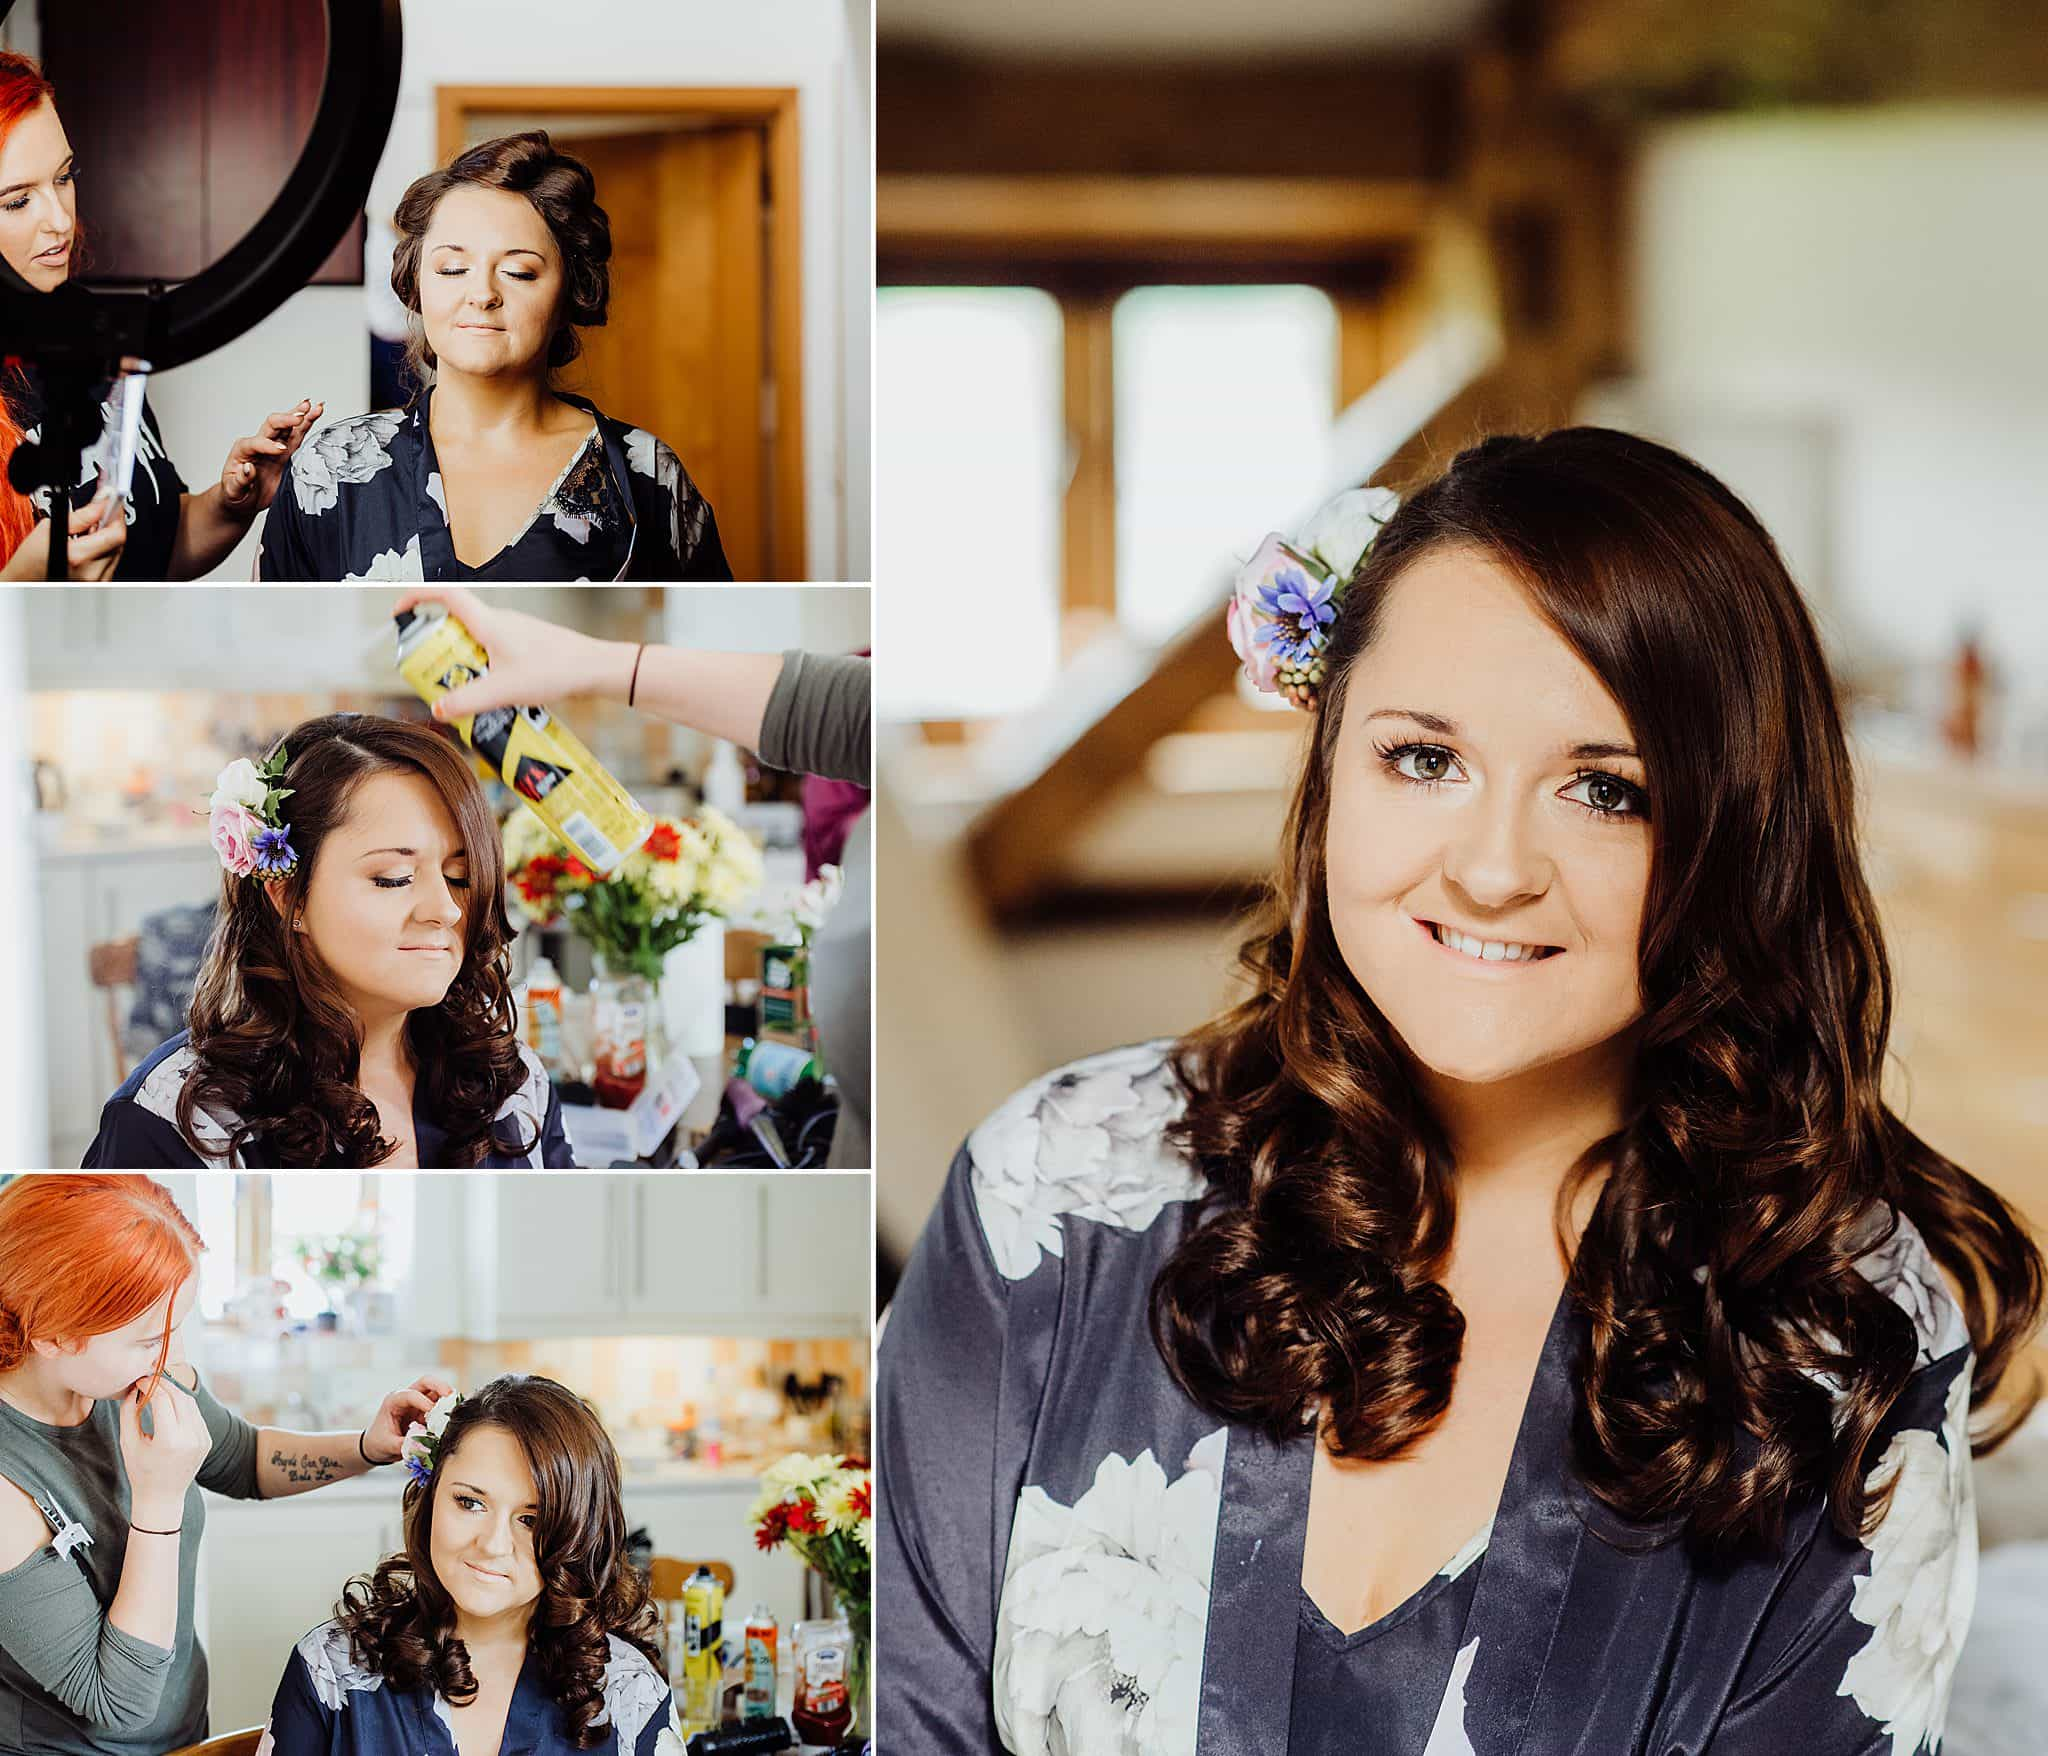 collage of photos of the bride having her hair done on her wedding day showing the different stages